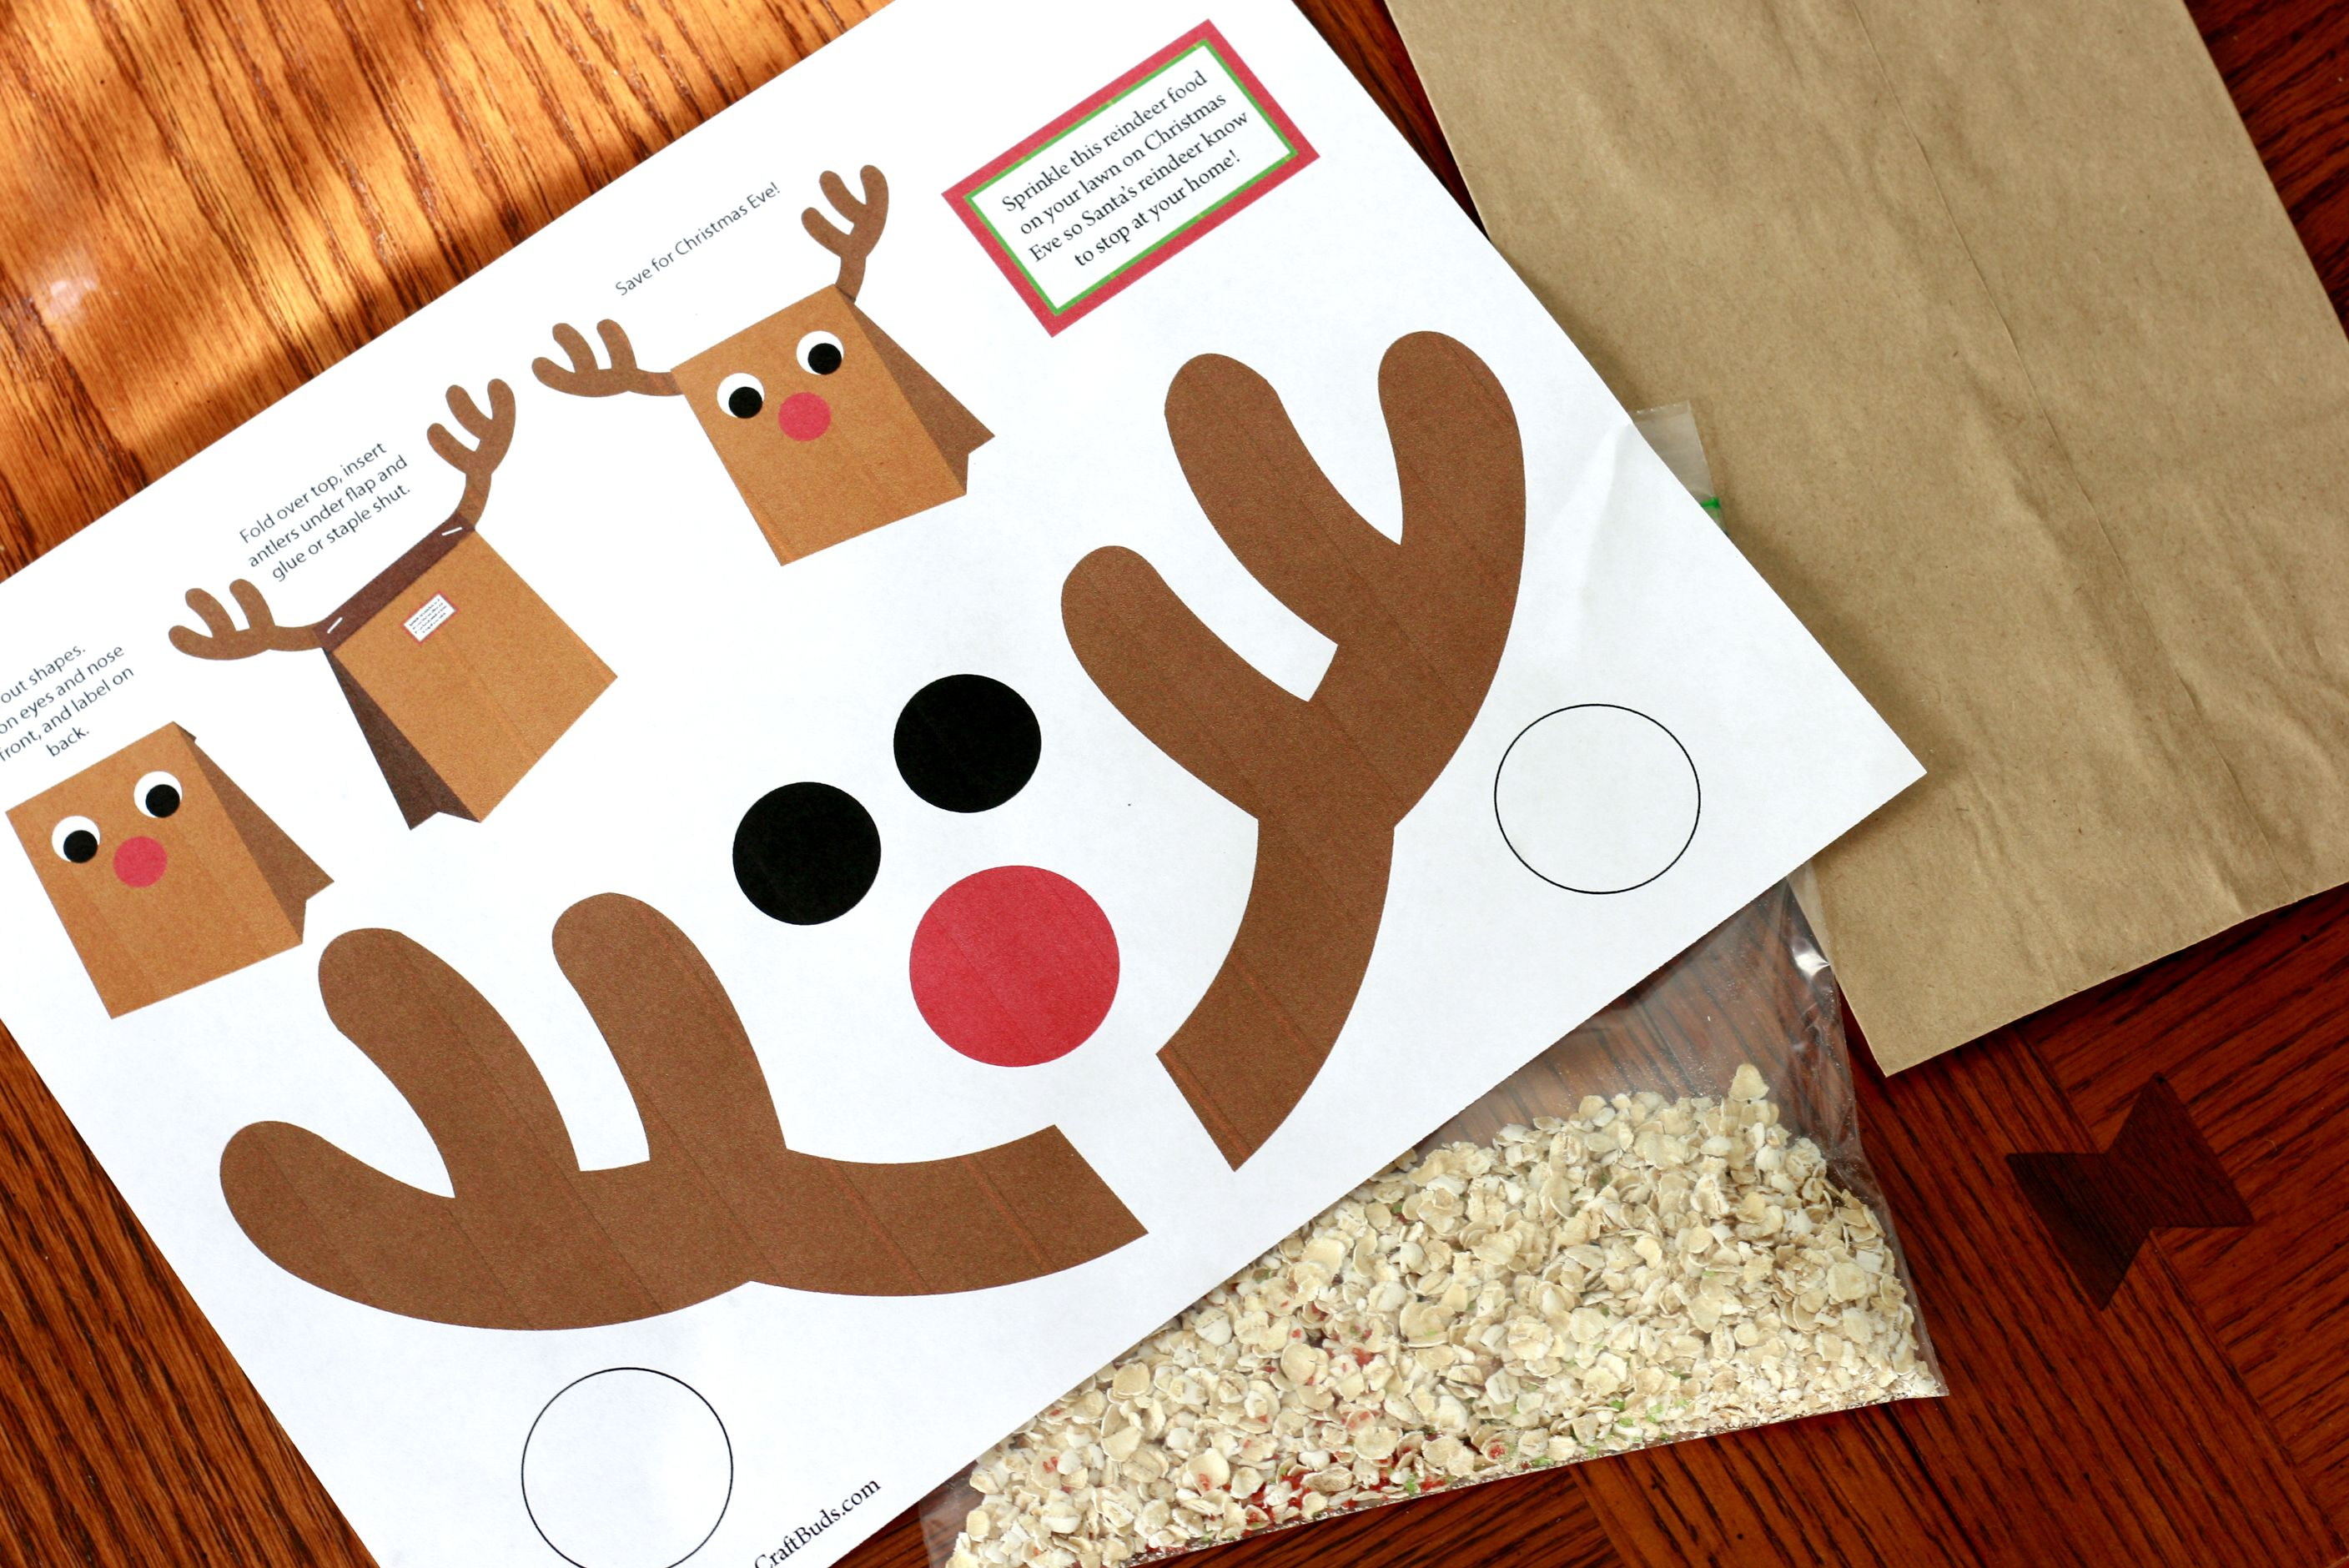 Adult Christmas Craft Ideas Part - 28: Christmas+Crafts+for+Adults | Last-Minute Christmas Gifts For Kids And